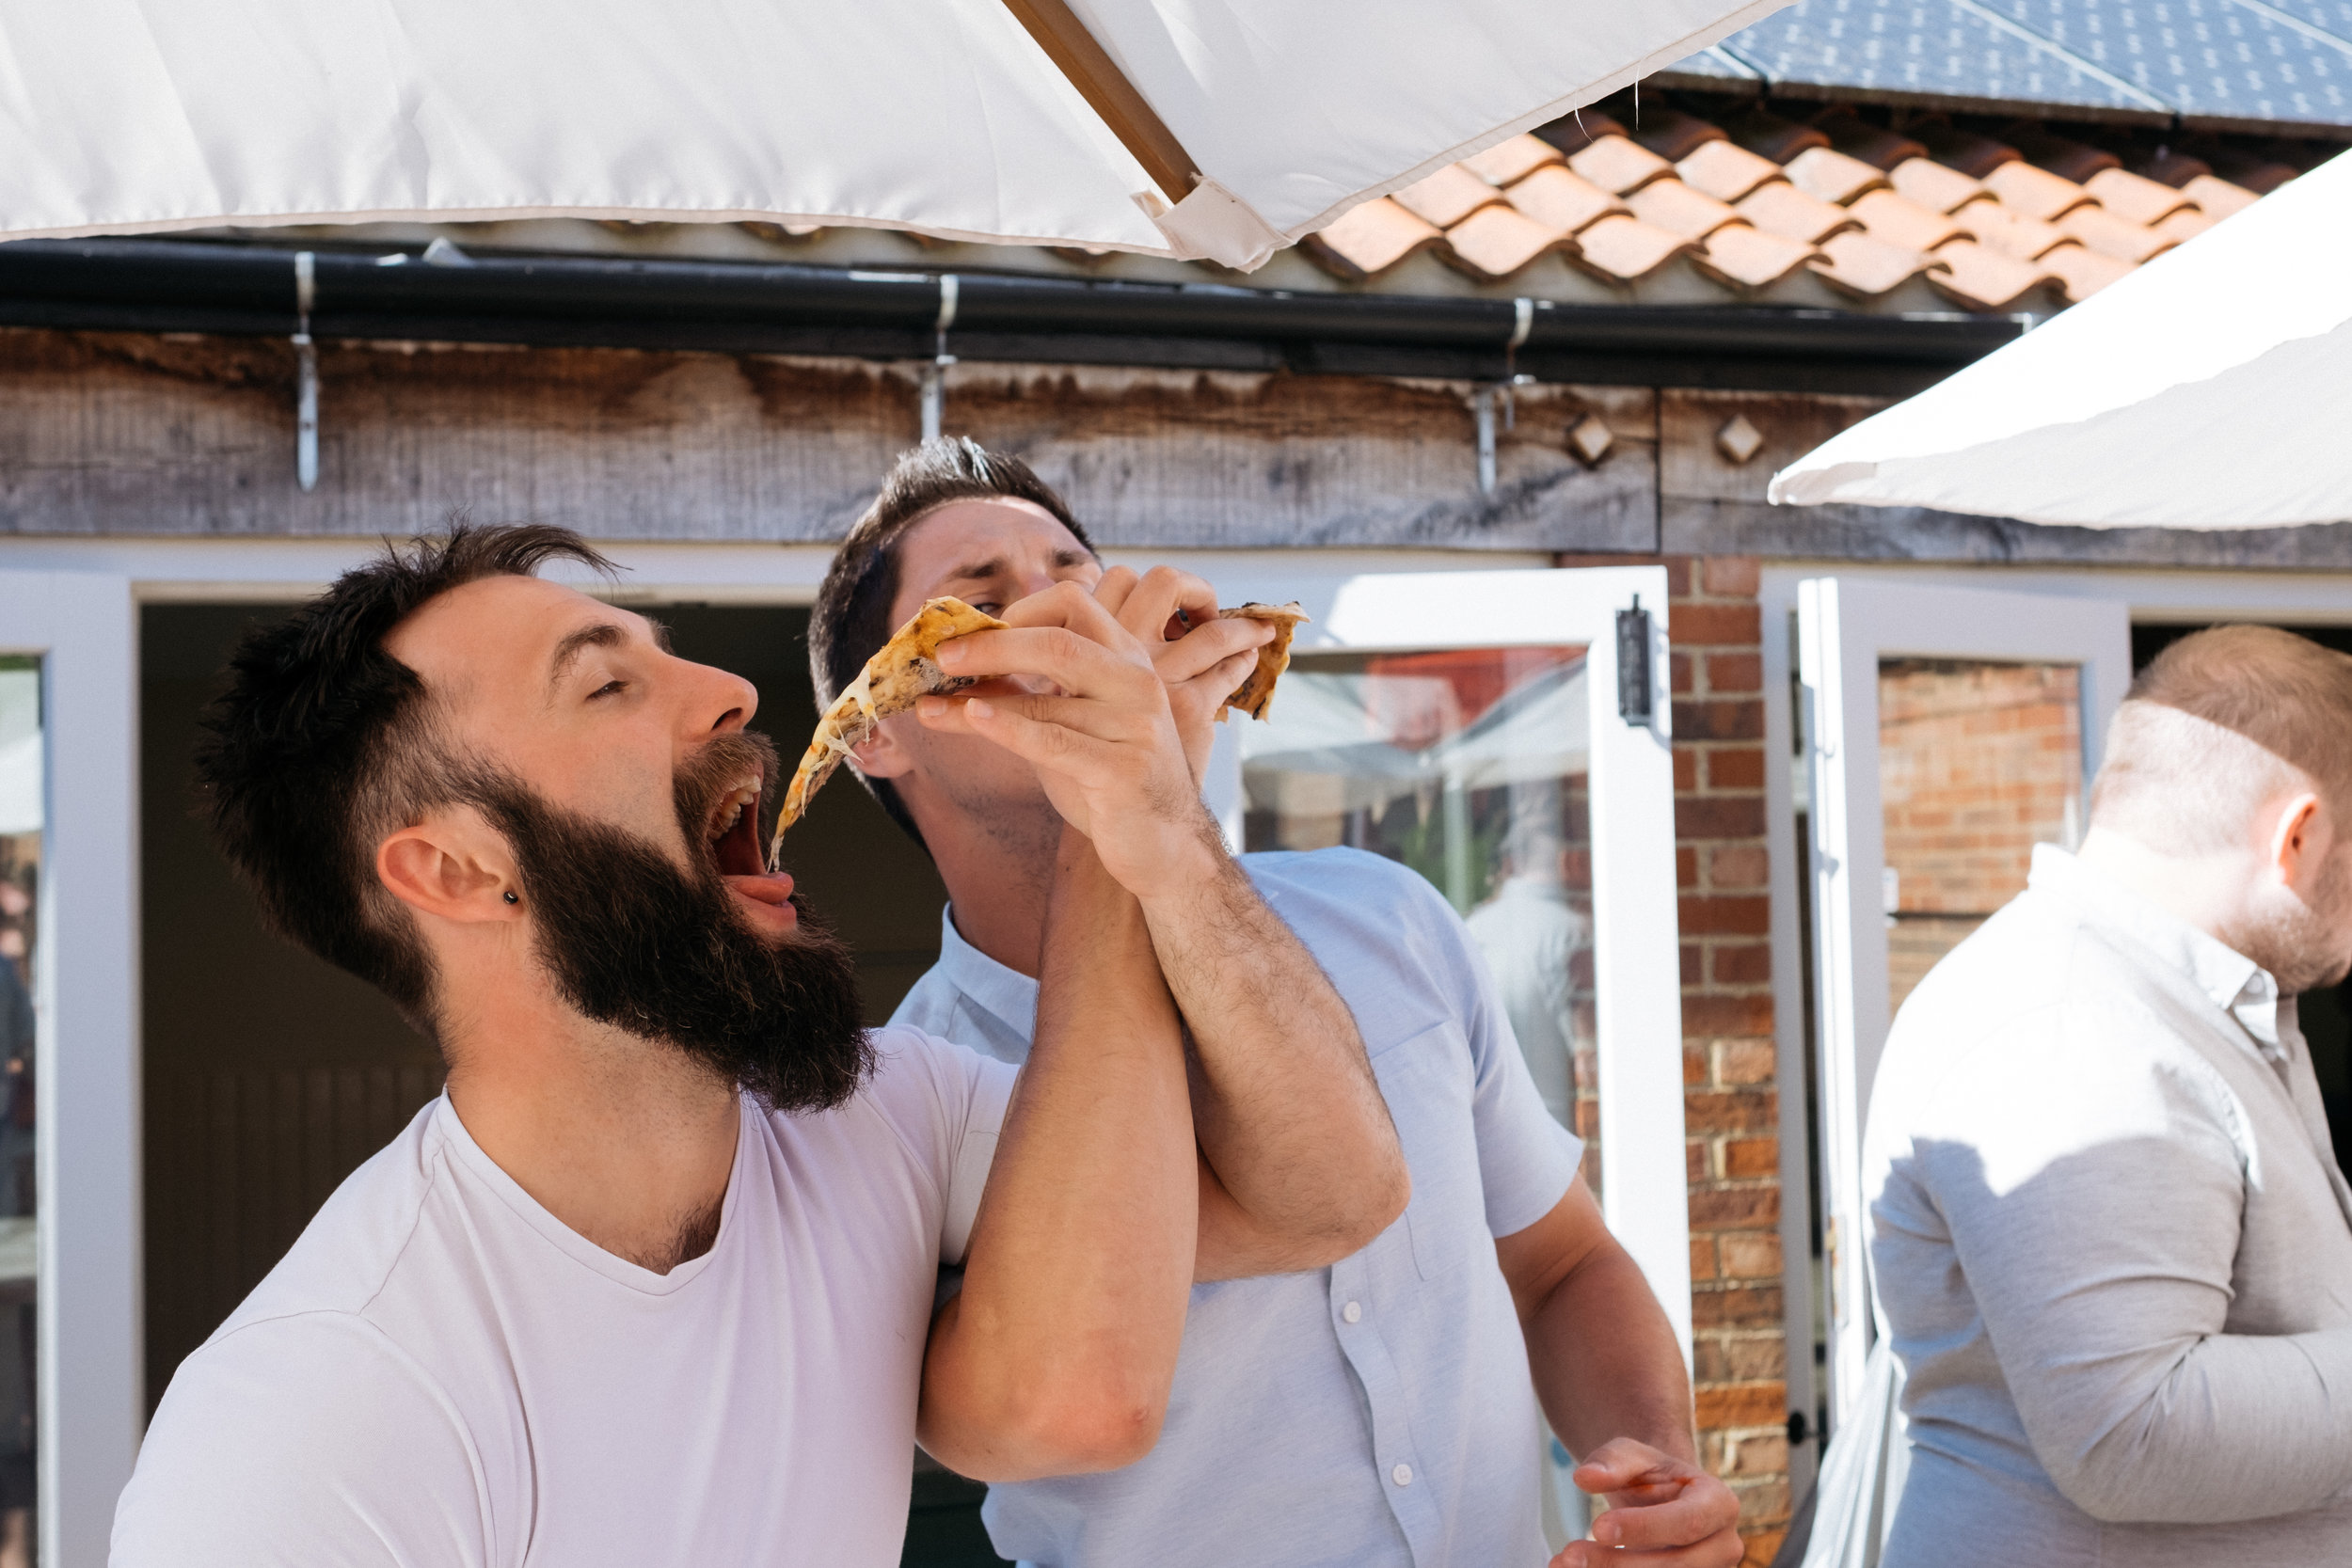 Wedding guests devouring pizza